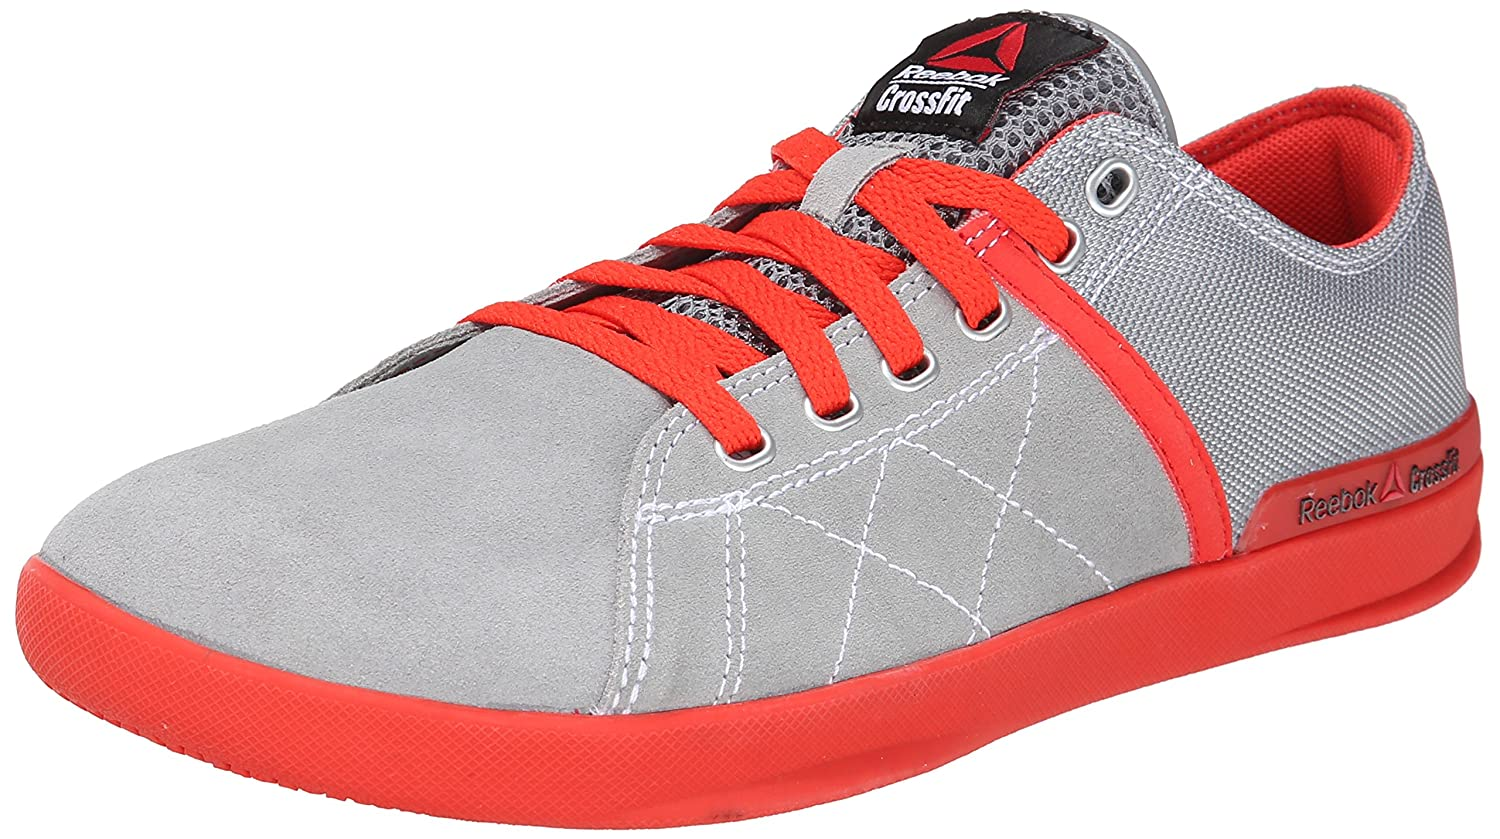 chiave inglese Fiduciosamente Anno  Buy Reebok Men's crosssfit lite lo tr-m, Flat Grey/China Red/White, 10.5 M  US at Amazon.in